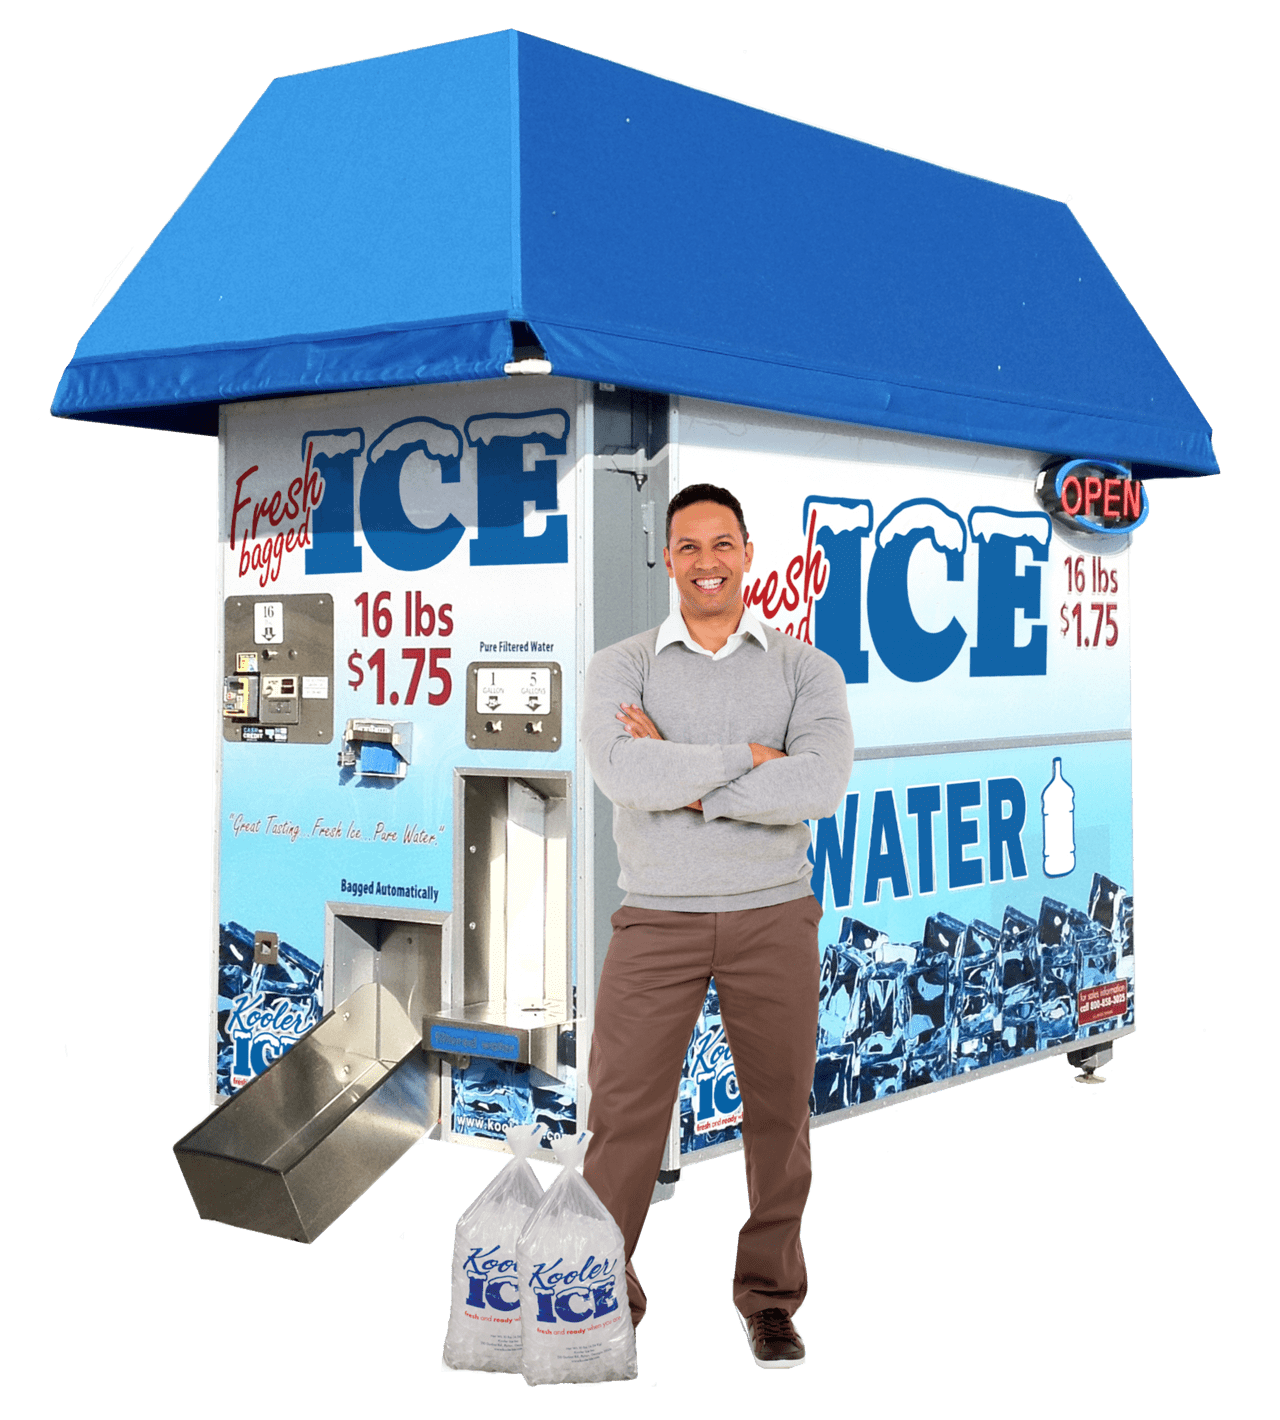 Kooler Ice KI810 ice and water vending machine